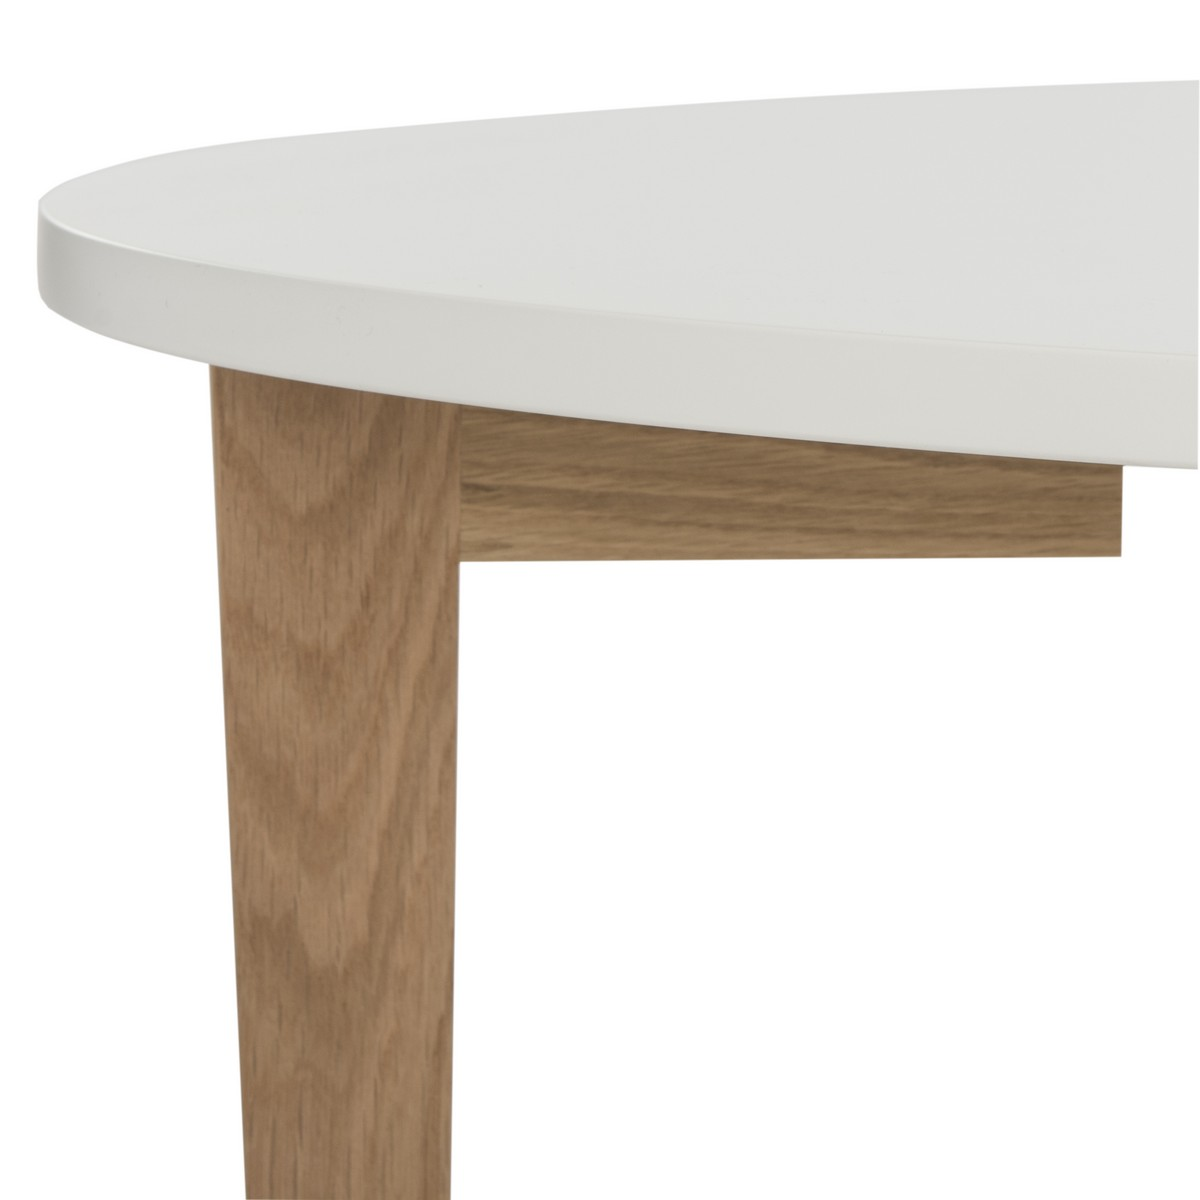 foxa coffee tables  furniture by safavieh - designed to combine style and substance this contemporary oval coffee tableoffers two layers of haute styleand storage inspired by the legendarydesigns